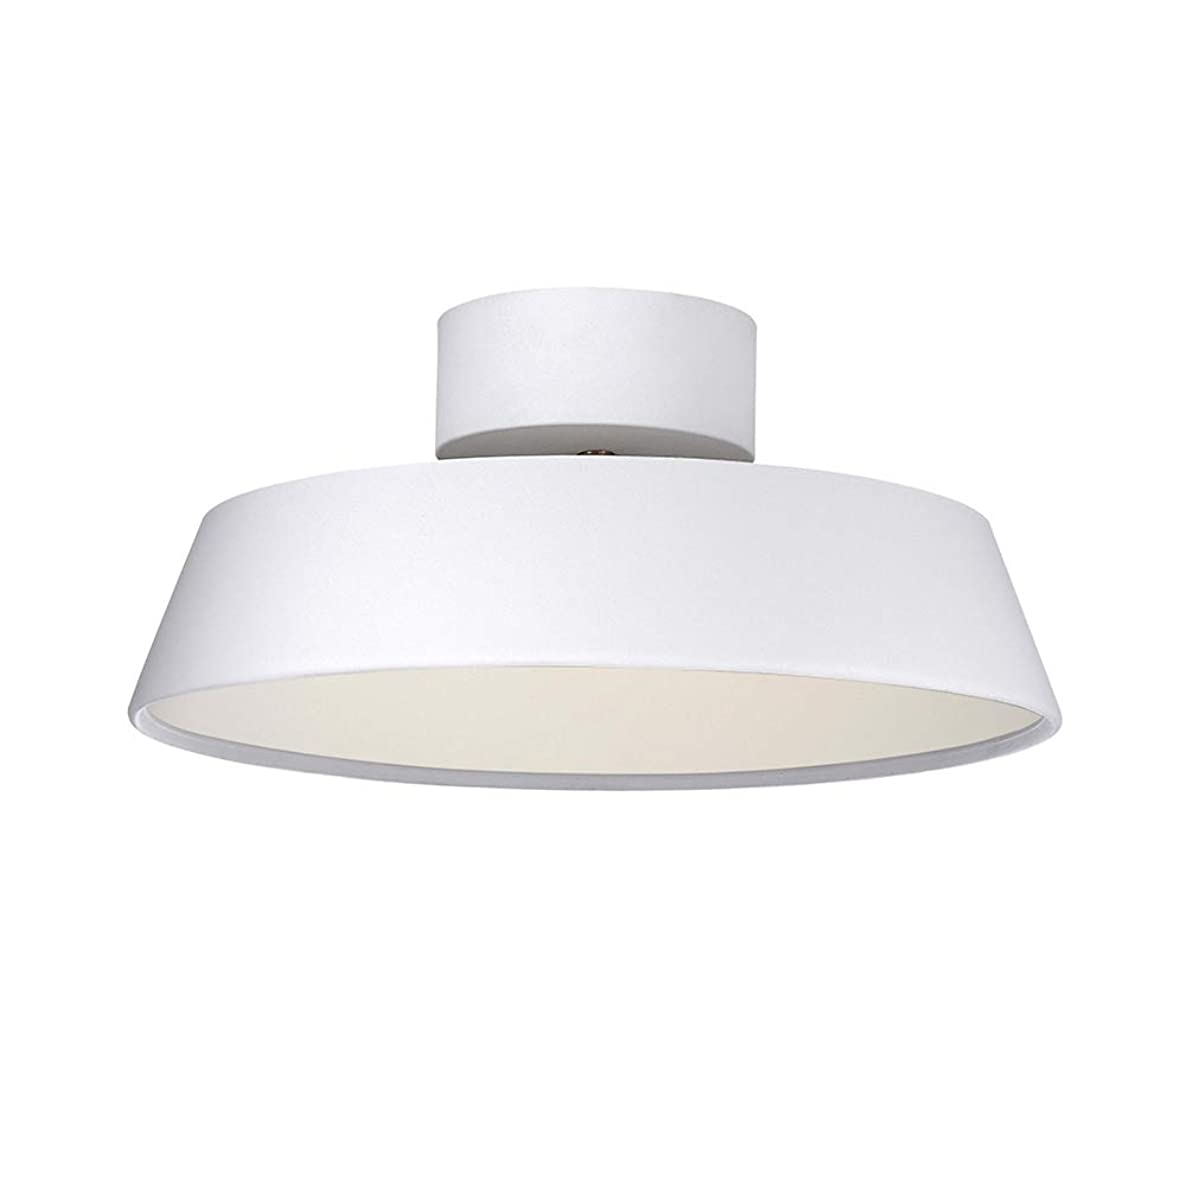 Macarons Ceiling Light Fixture Semi-Flush Mount, LED 12W Adjustable Ceiling lamp Bedroom Restaurant Living Room Aisle 30x30x13cm-White Trichromatic dimming